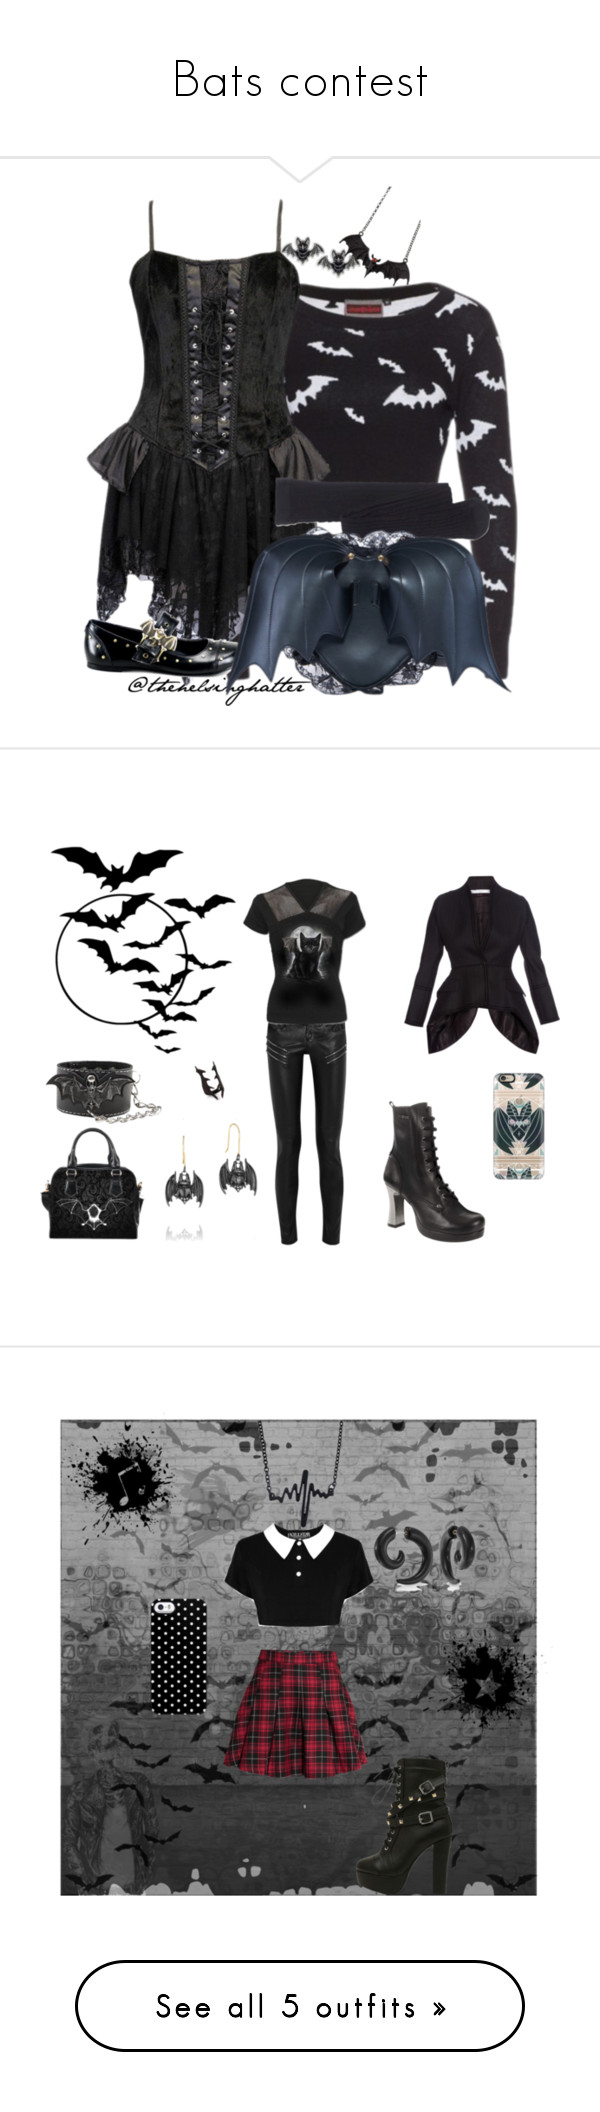 """Bats contest"" by sunako-nakahara ❤ liked on Polyvore featuring bat, goth, gothic, bats, alternative, Madewell, Demonia, women's clothing, women and female"